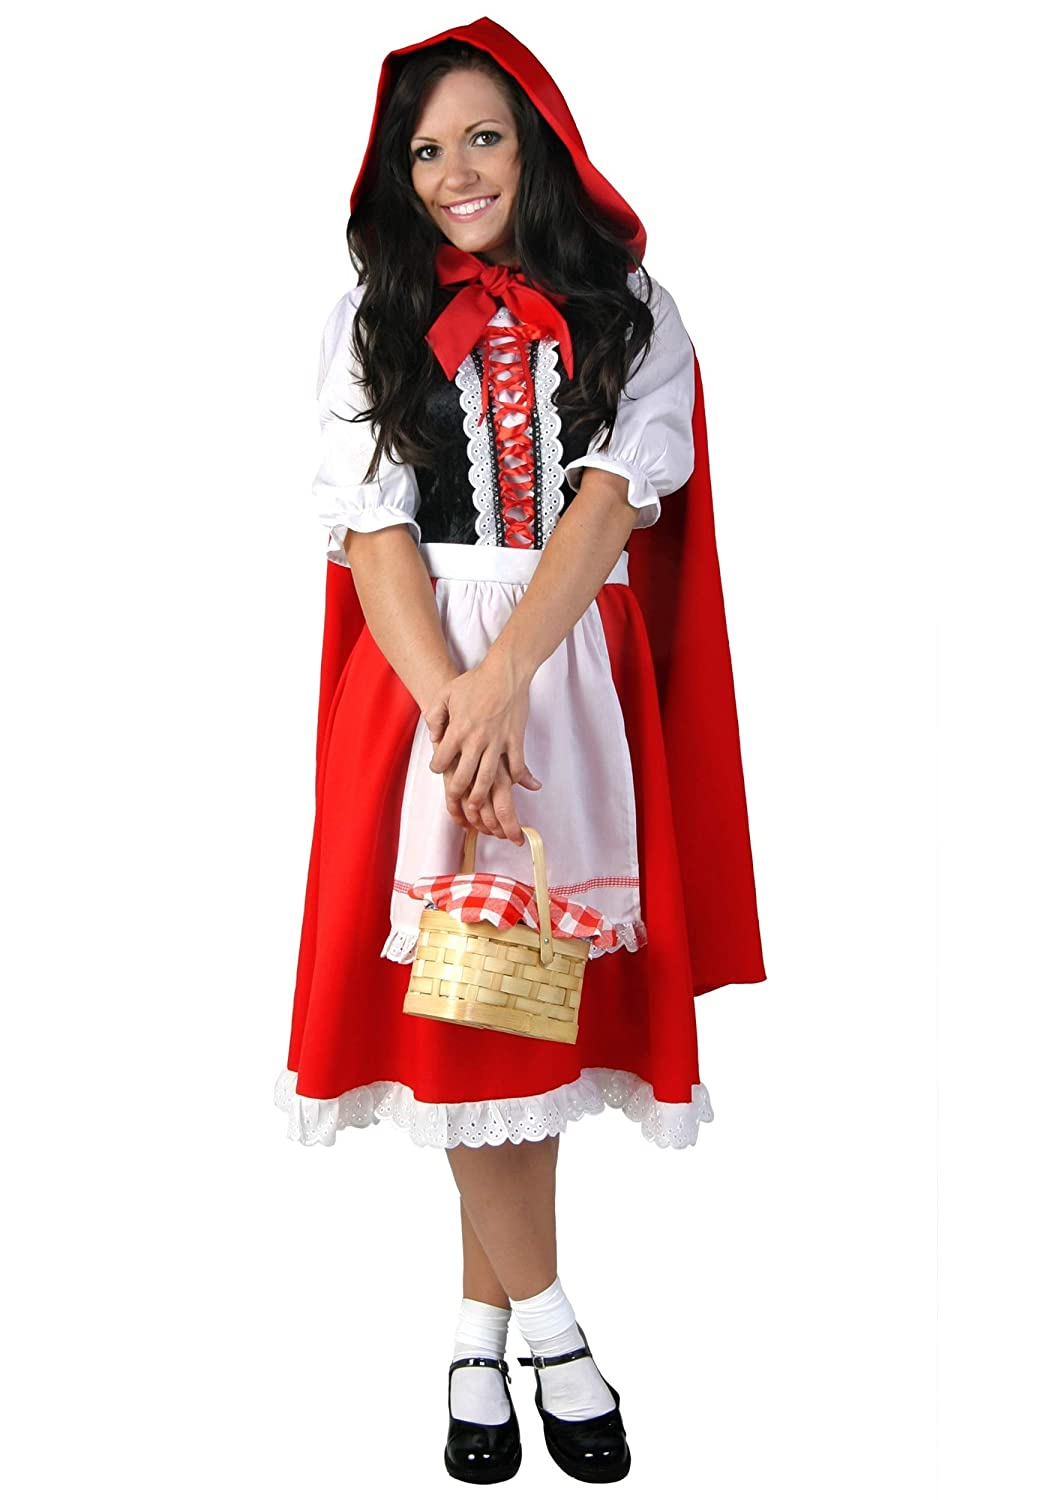 31e2d10ab09 Amazon.com  Deluxe Little Red Riding Hood Costume for Women Red Riding Hood  Dress and Cape  Clothing